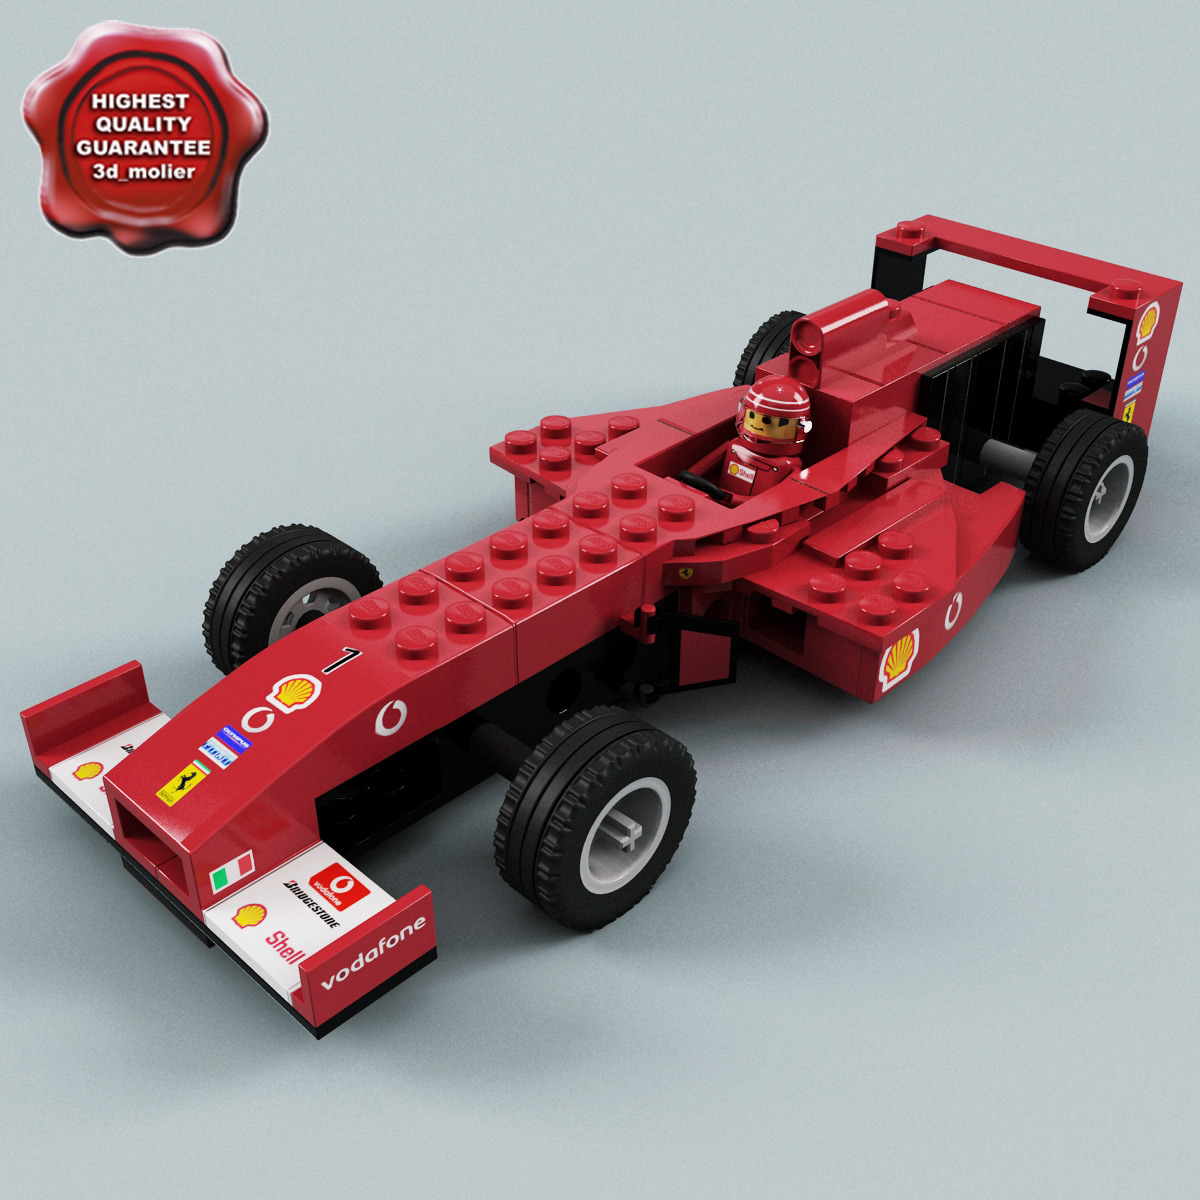 Lego_Racing_Car_00.jpg